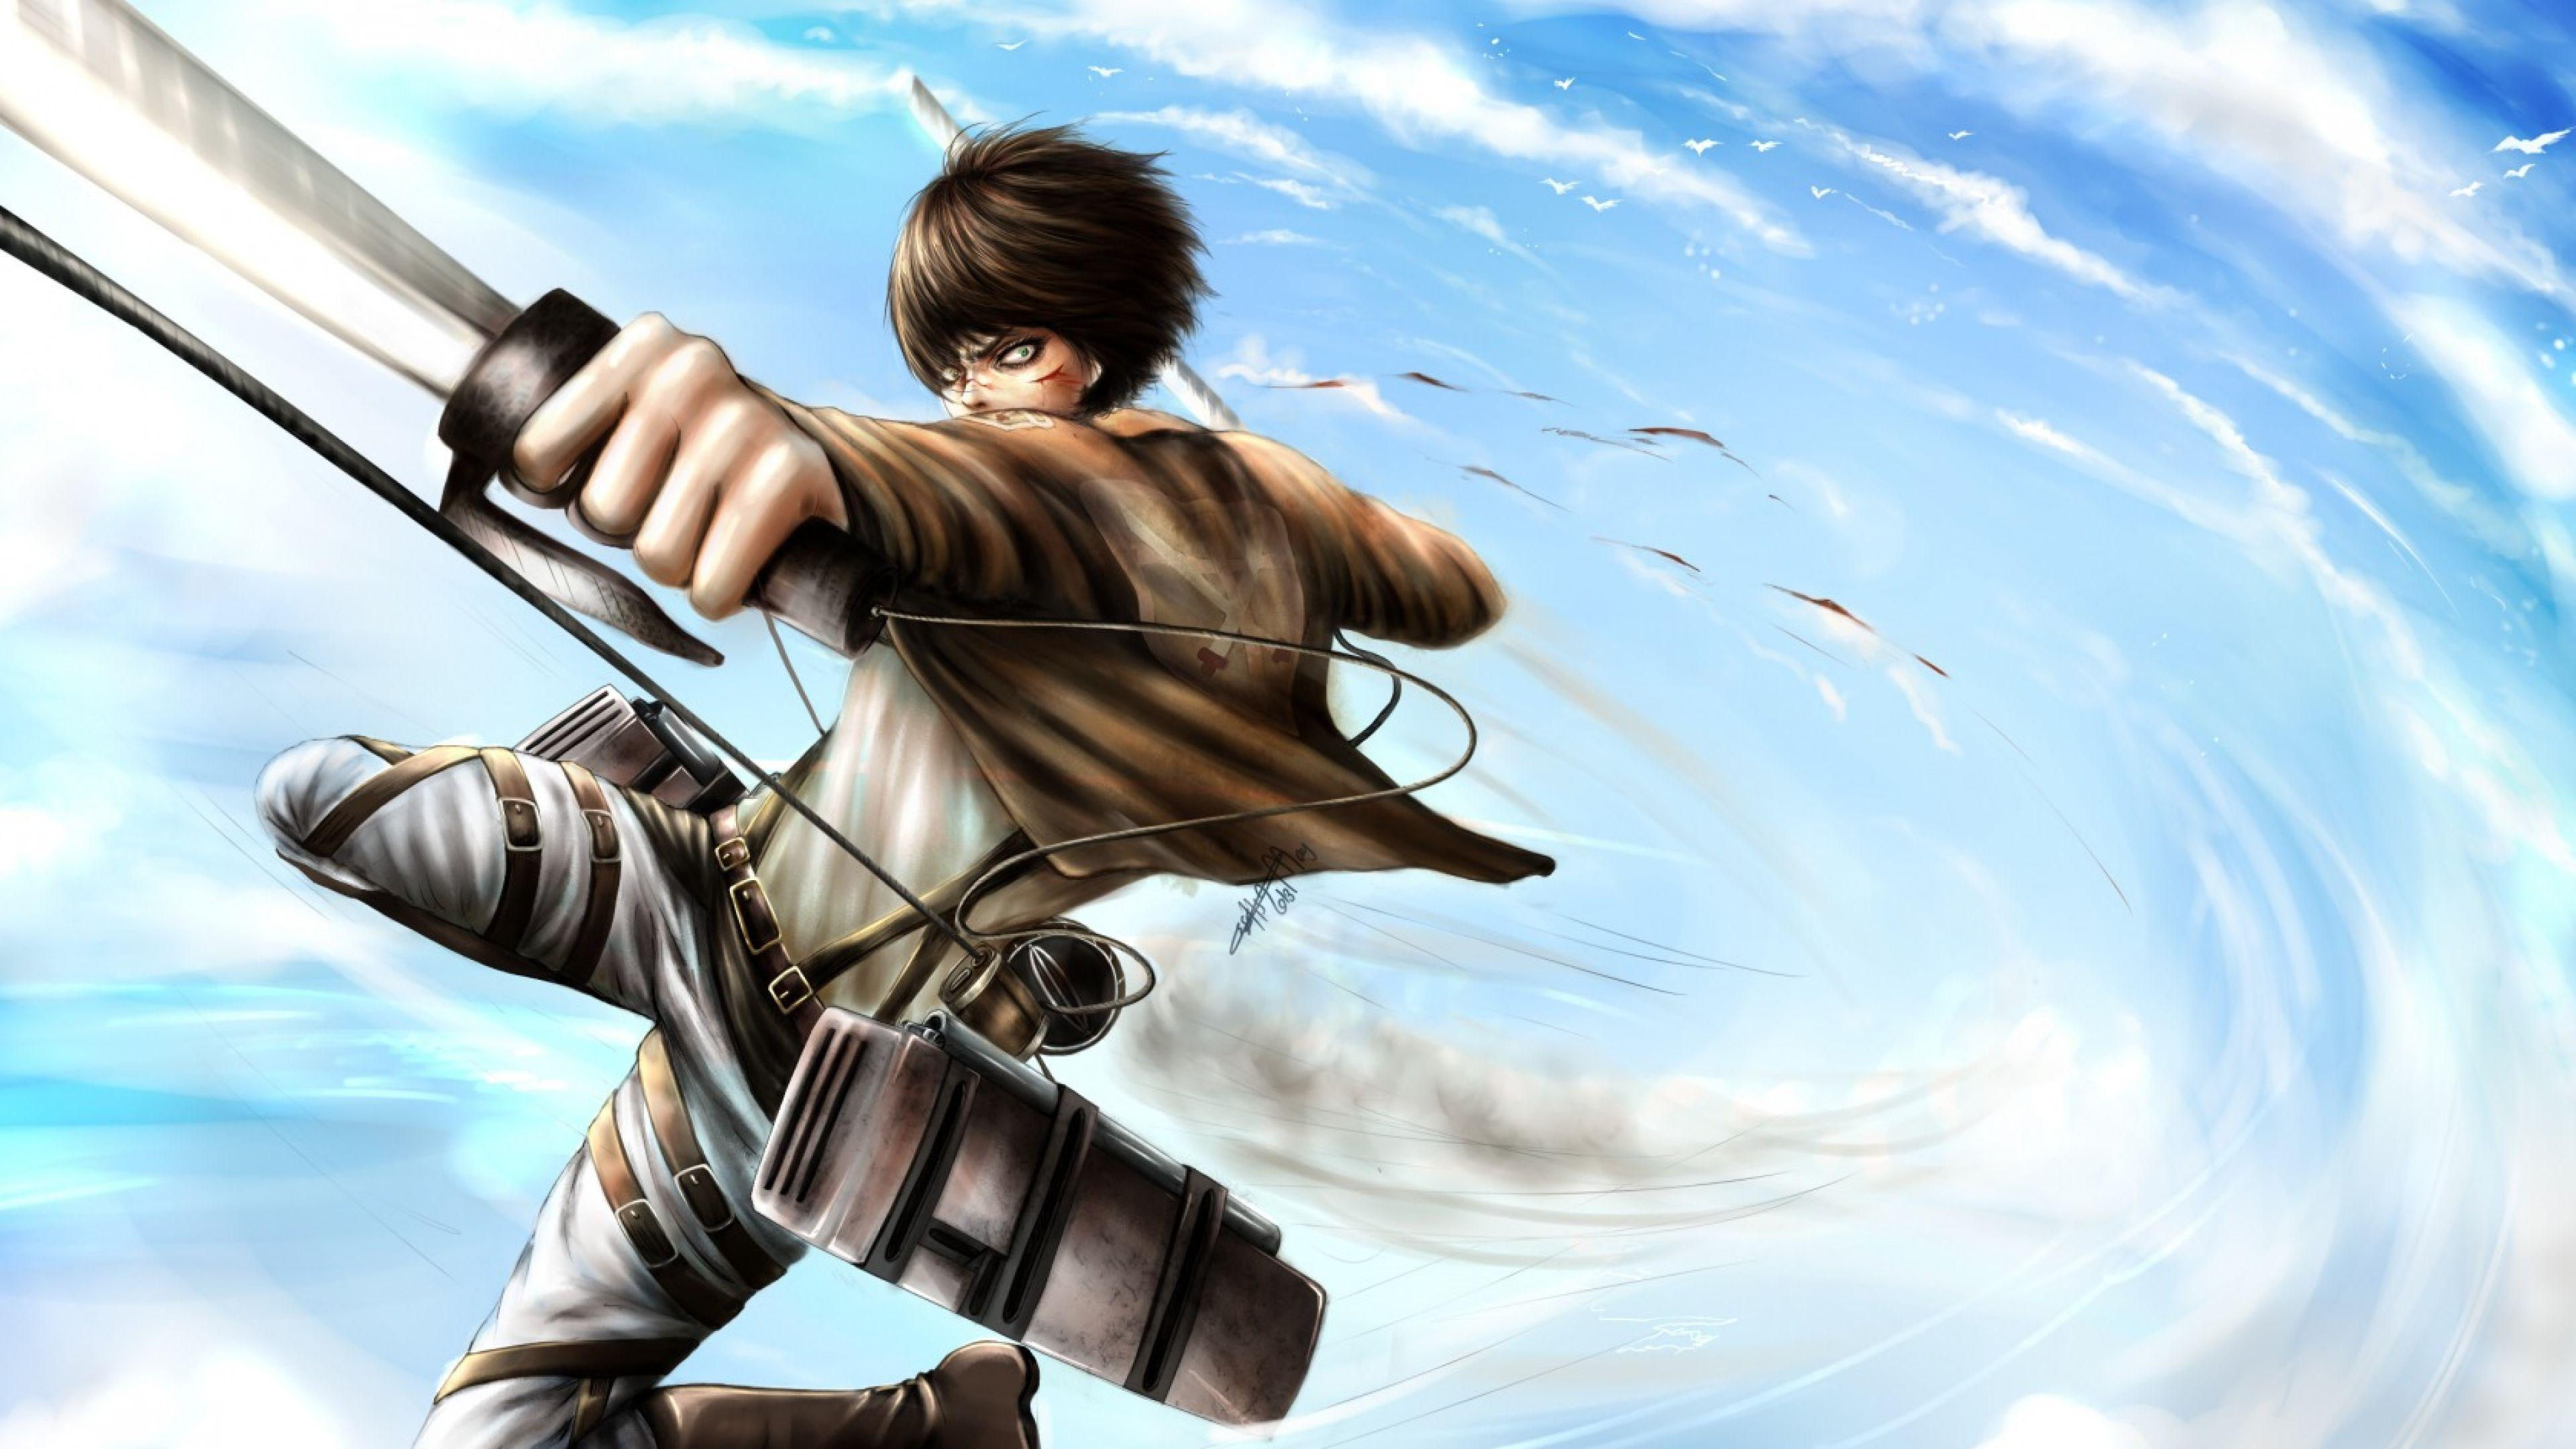 Attack on titan wallpapers wallpaper cave 4k ultra hd attack on titan wallpapers hd desktop backgrounds voltagebd Image collections